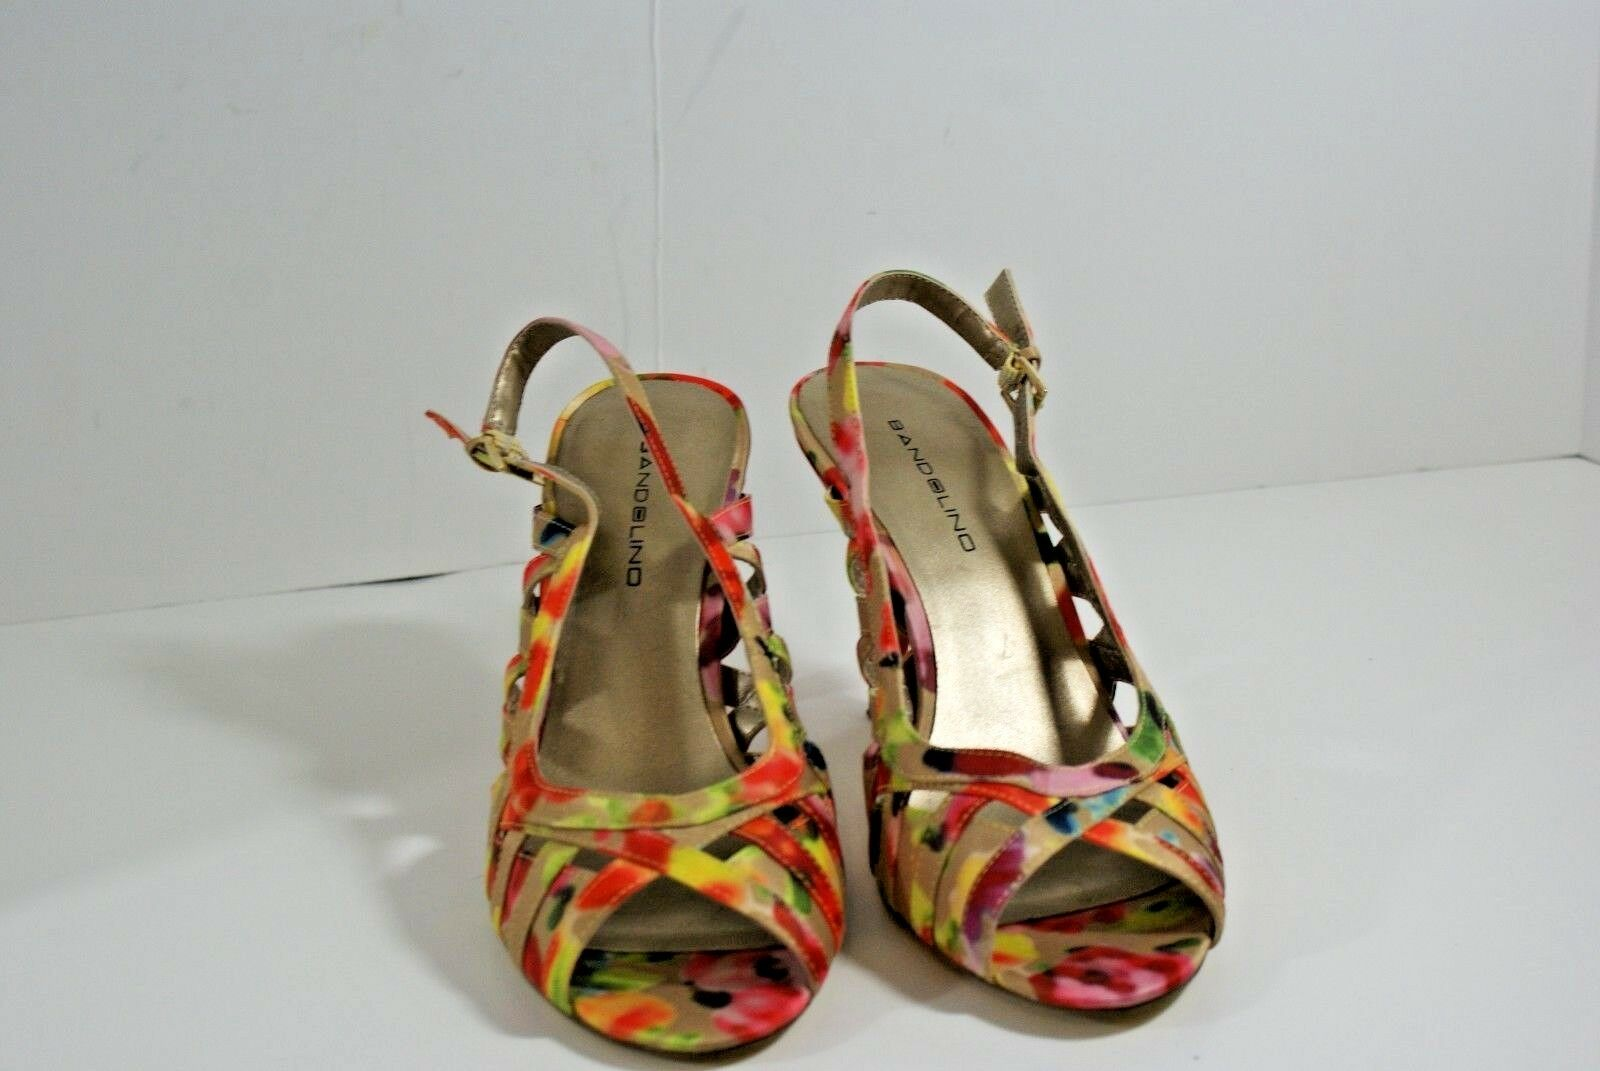 Bandolino Womens Jorkins Red 7.5 MultiColor Dress Sandals Shoes 7.5 Red M Slingback Heel c7a303